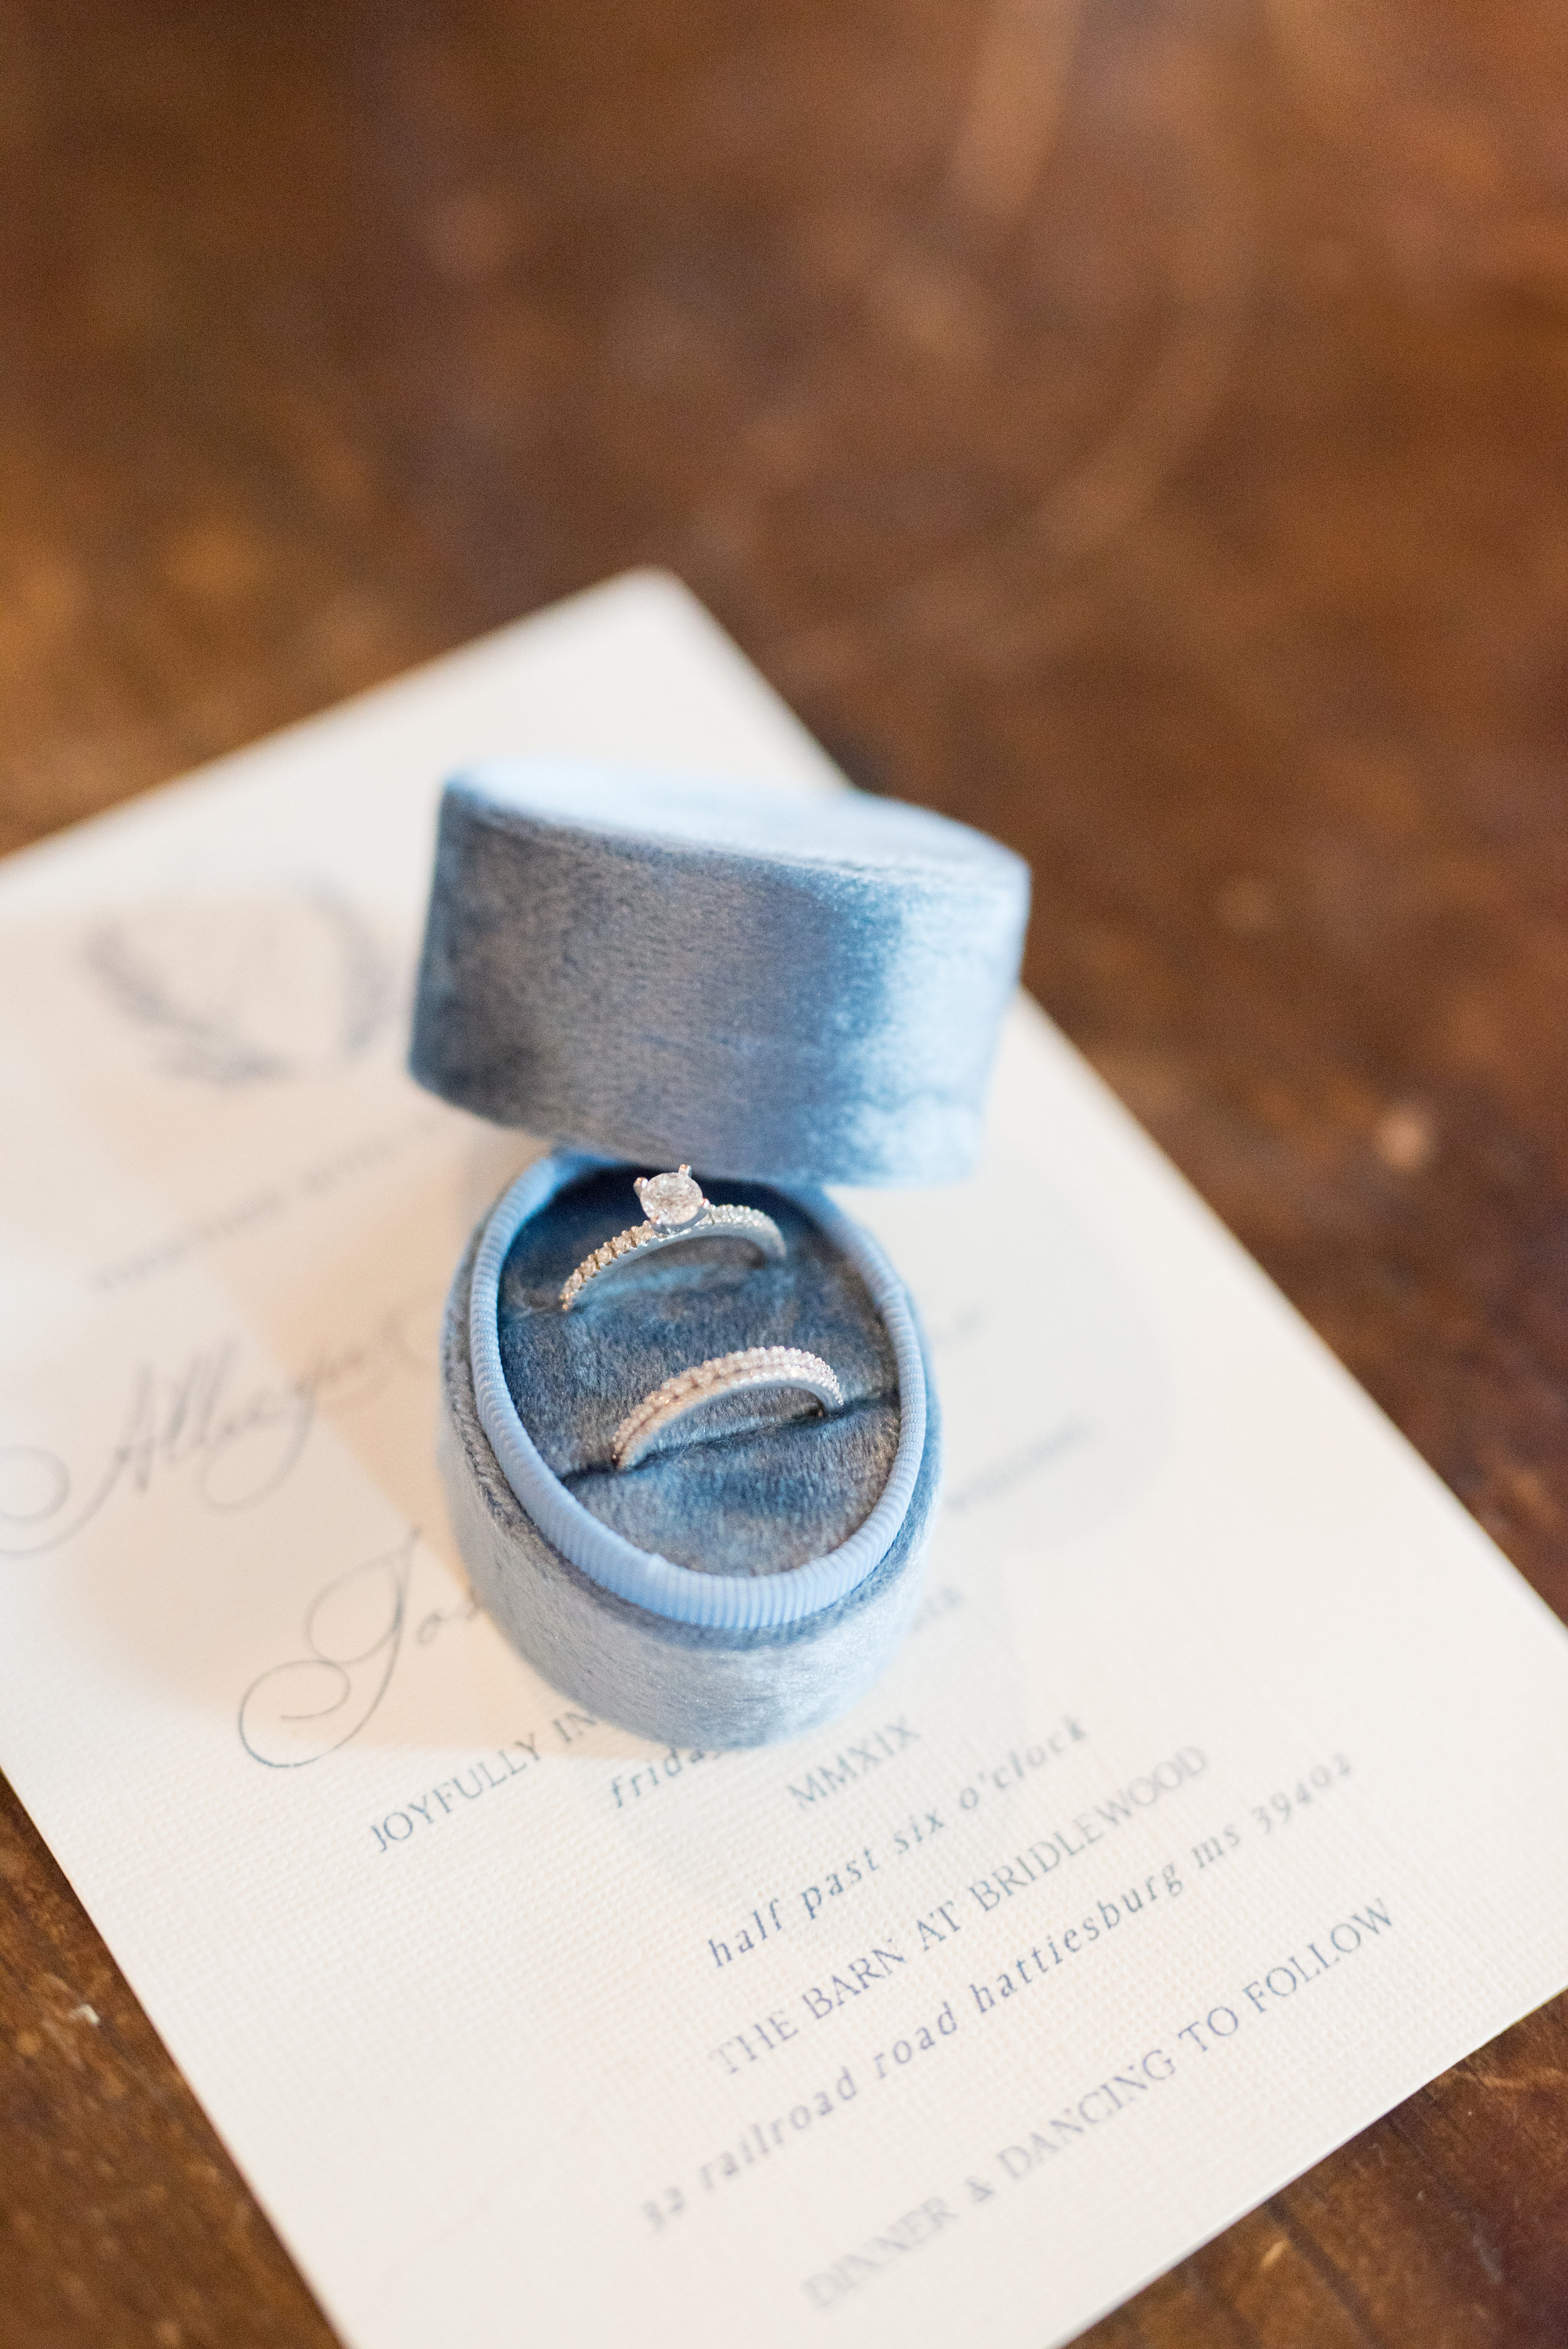 The Barn at Bridlewood wedding in Hattiesburg, Mississippi (MS) in June | Bride's wedding rings in a Mrs. Box, stationary and, details